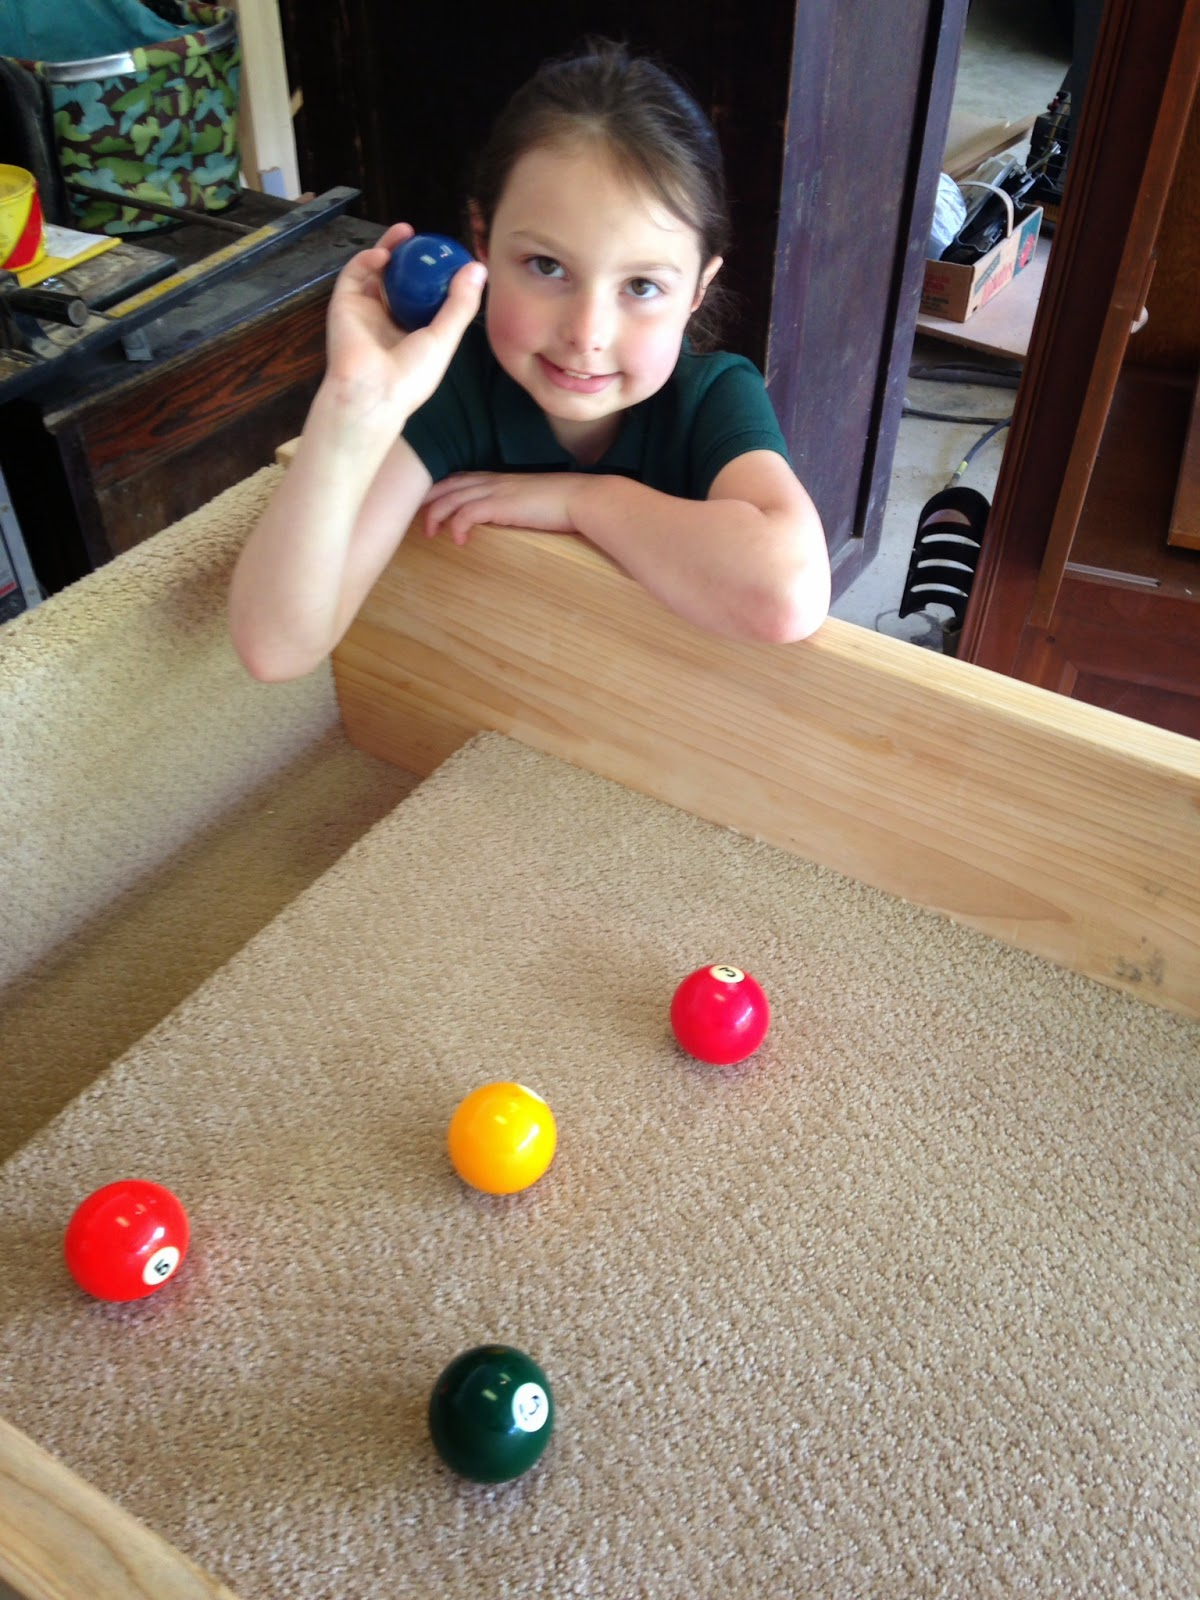 Next, We Vacuumed The Top, And Pulled Out The Billiard Balls And Started  Playing.